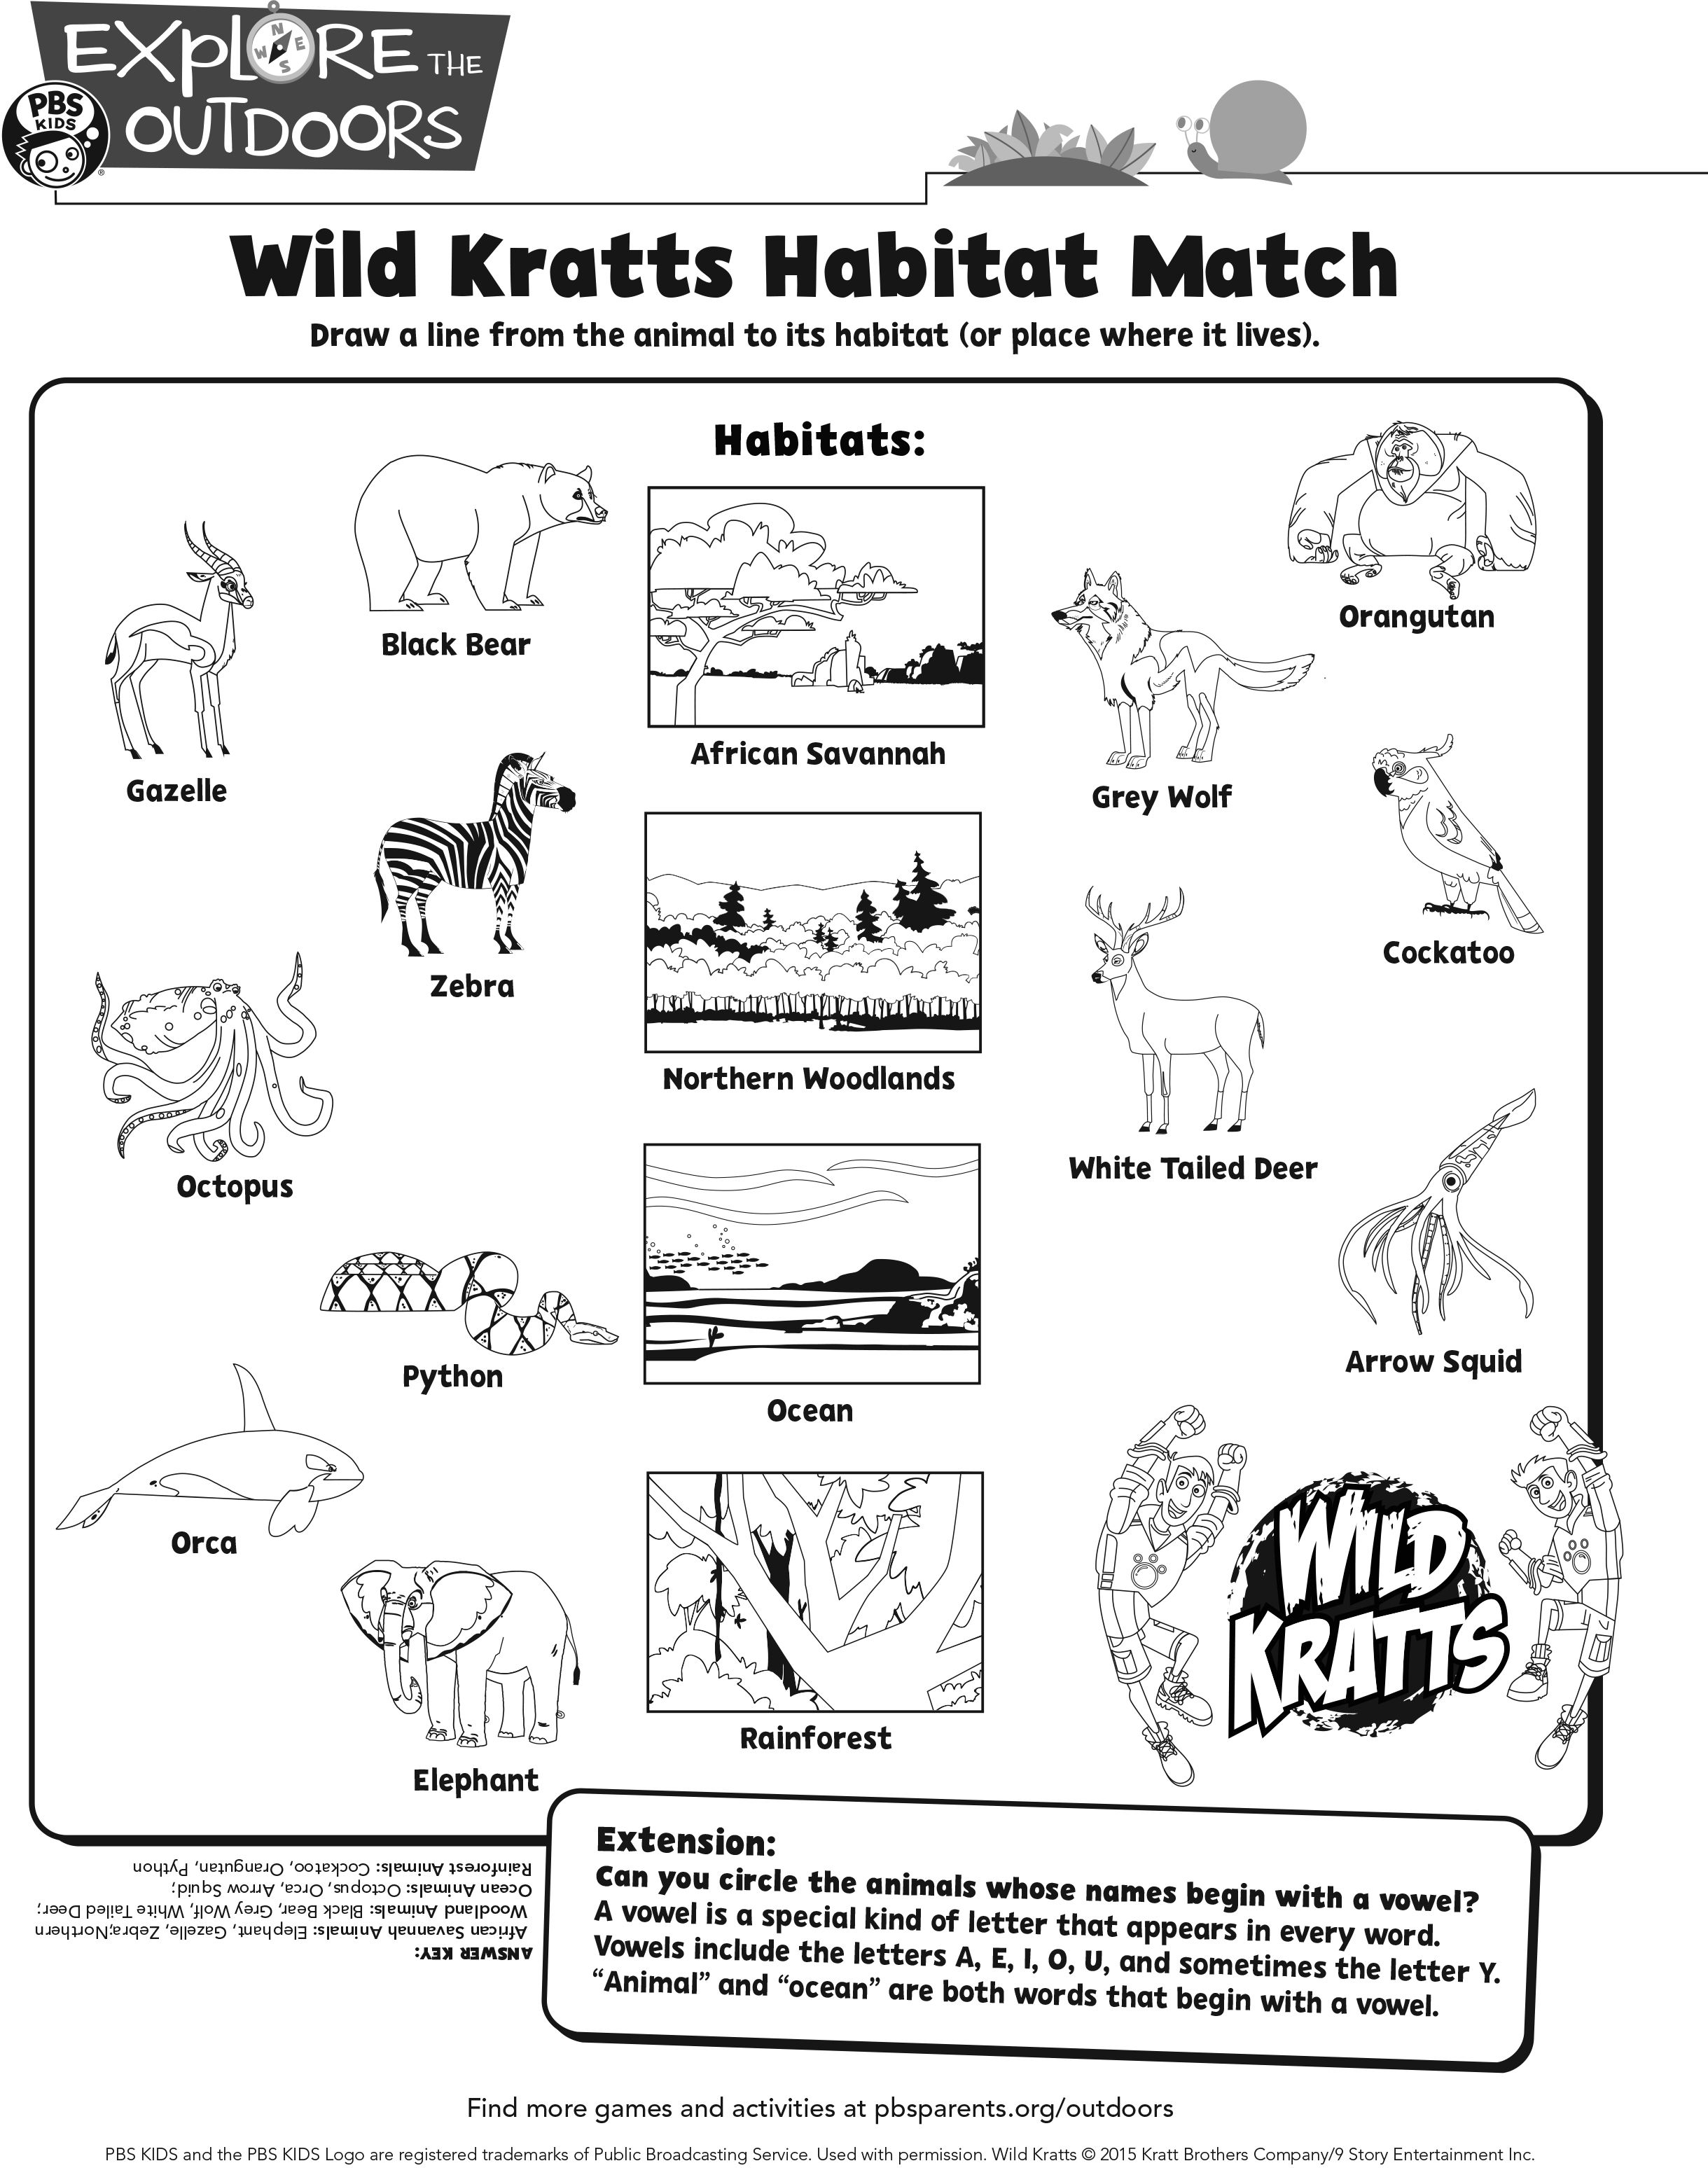 Match The Animals To Their Habitat In This Wild Kratts Activity Sheet Wildkratts Printable